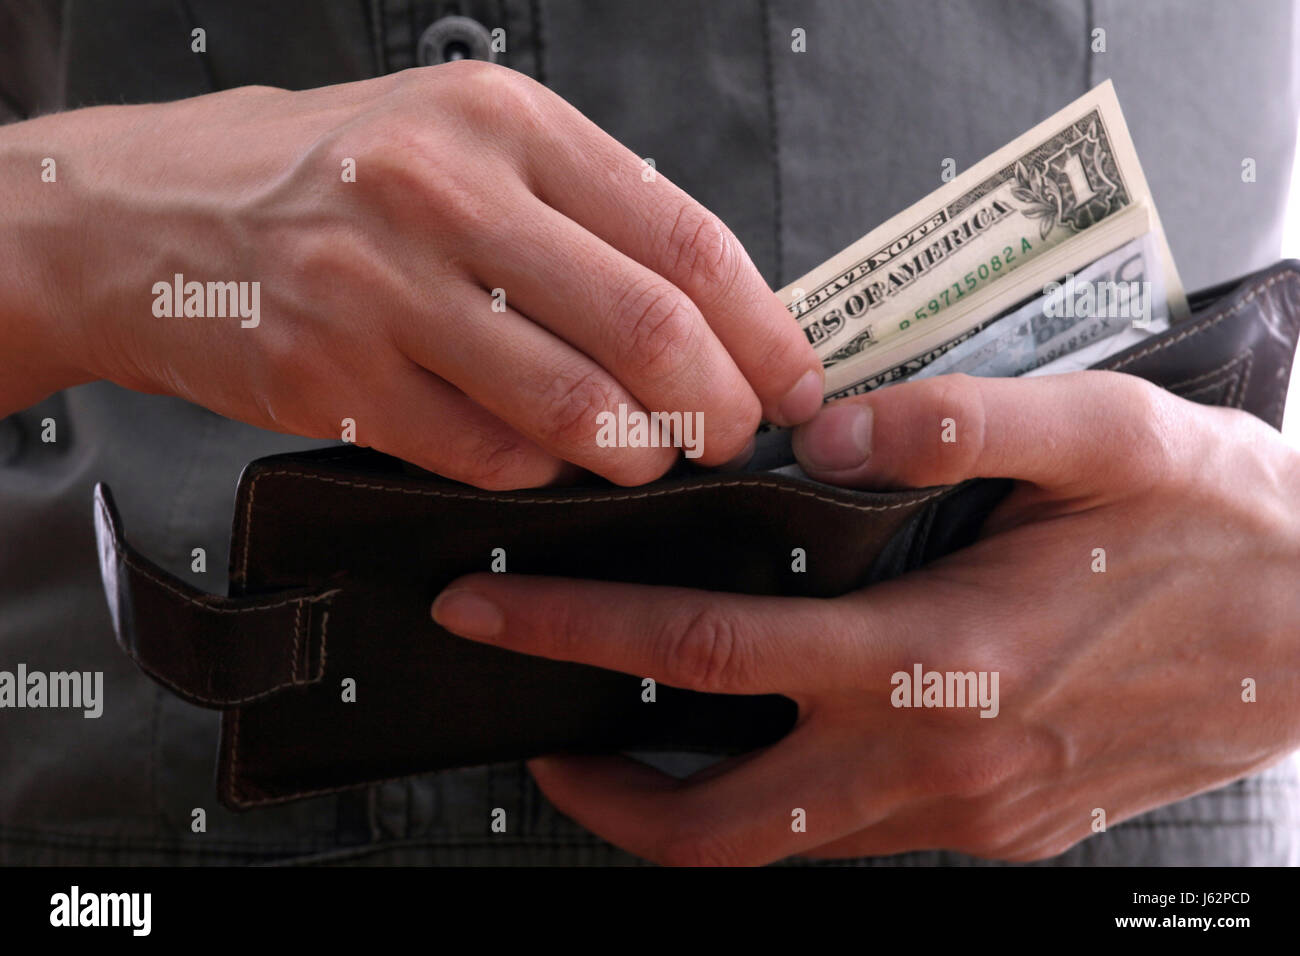 Bear Purse Stock Photos Images Alamy Wrist Red Hand Hands Wallet Moneybag Pocketbook Money Bank Lending Institution Pay Image